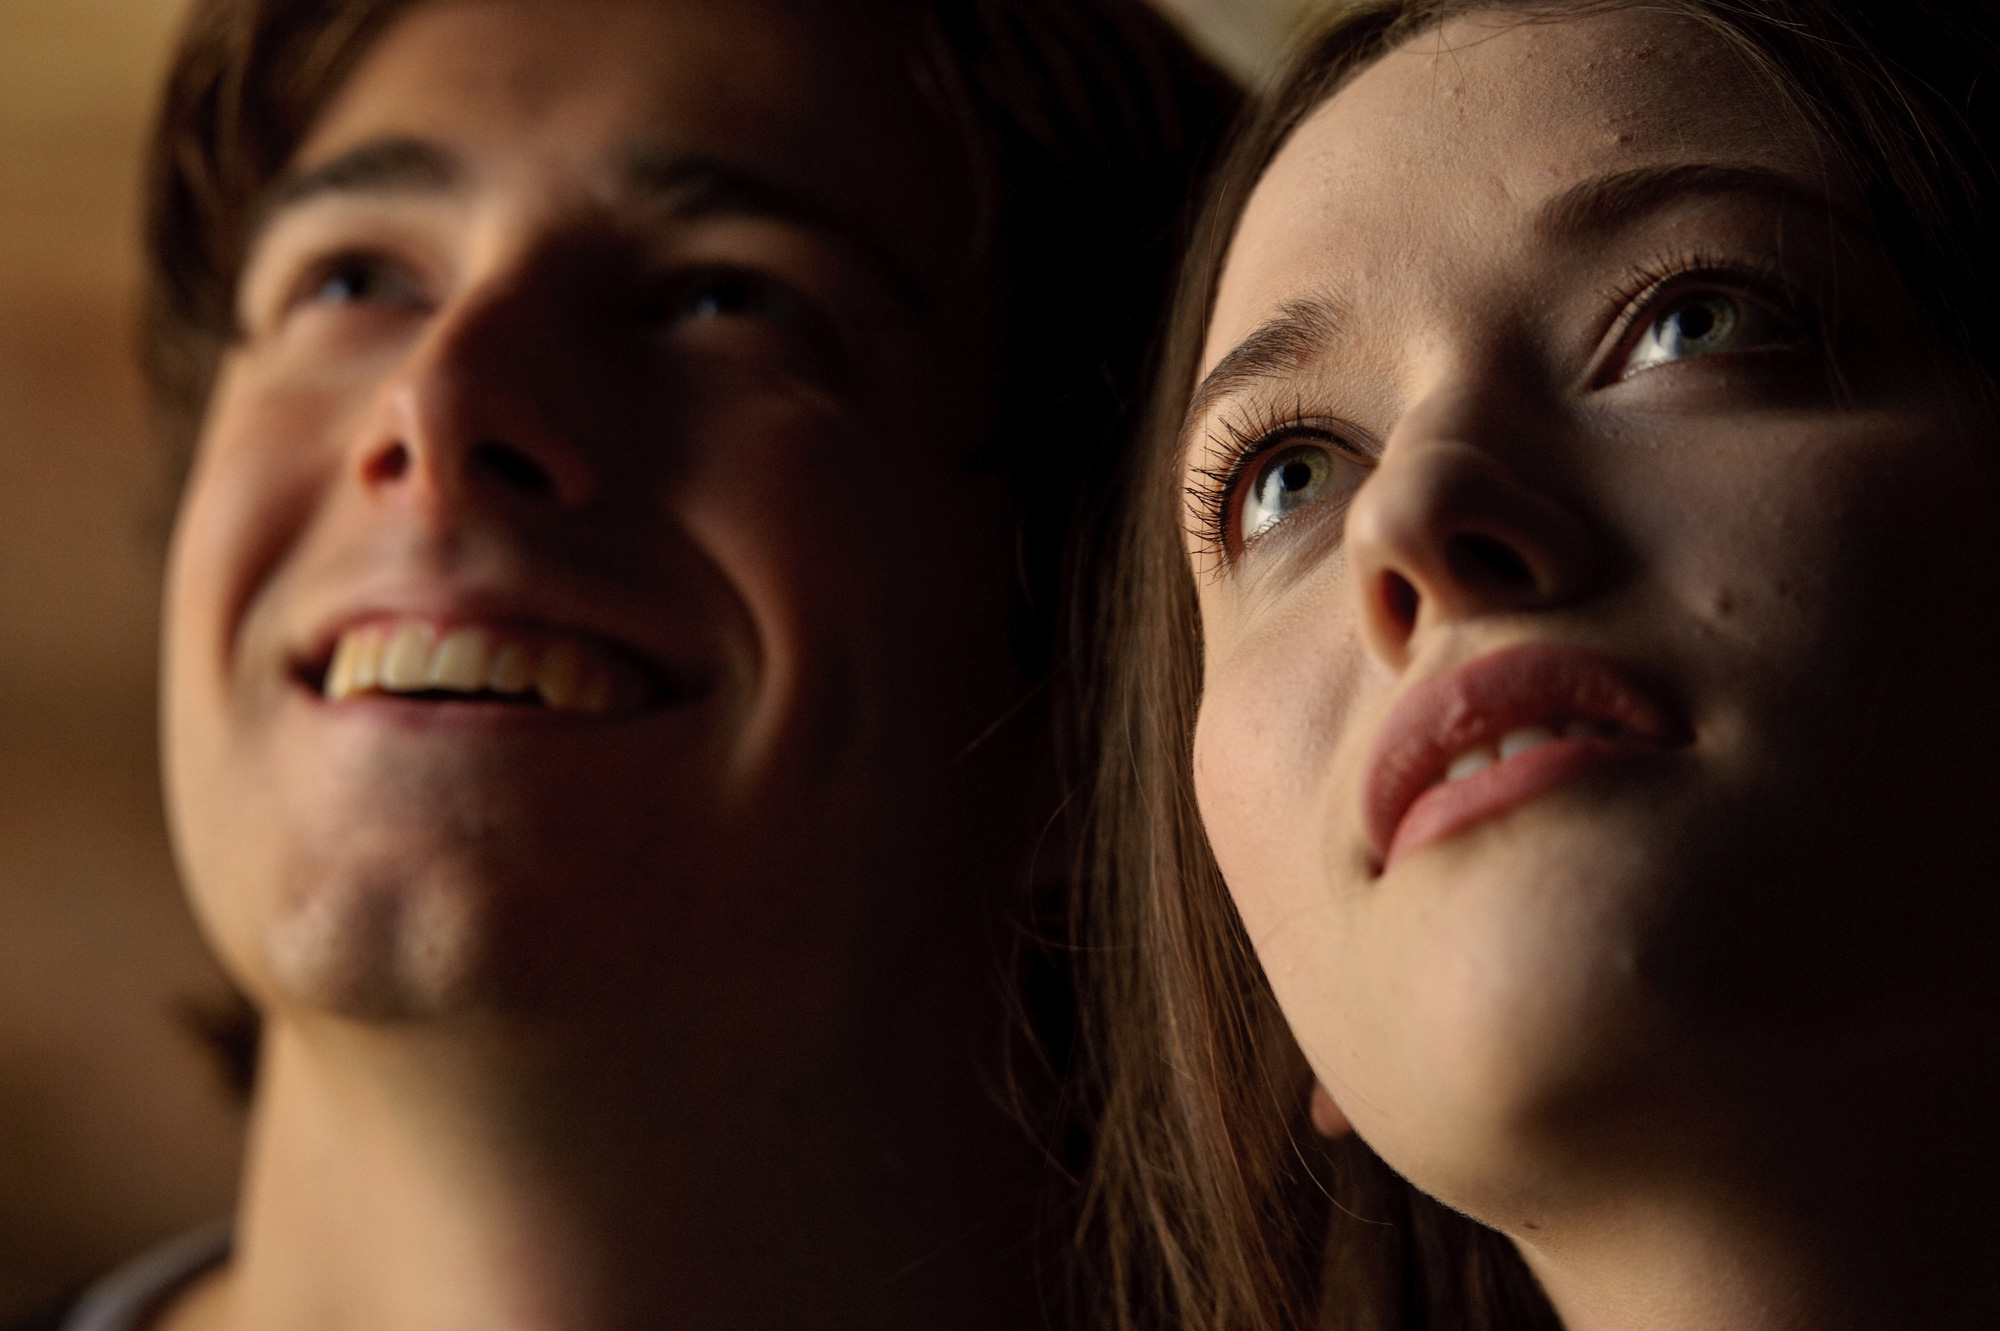 Kat Dennings and Reece Thompson in Daydream Nation (2010)